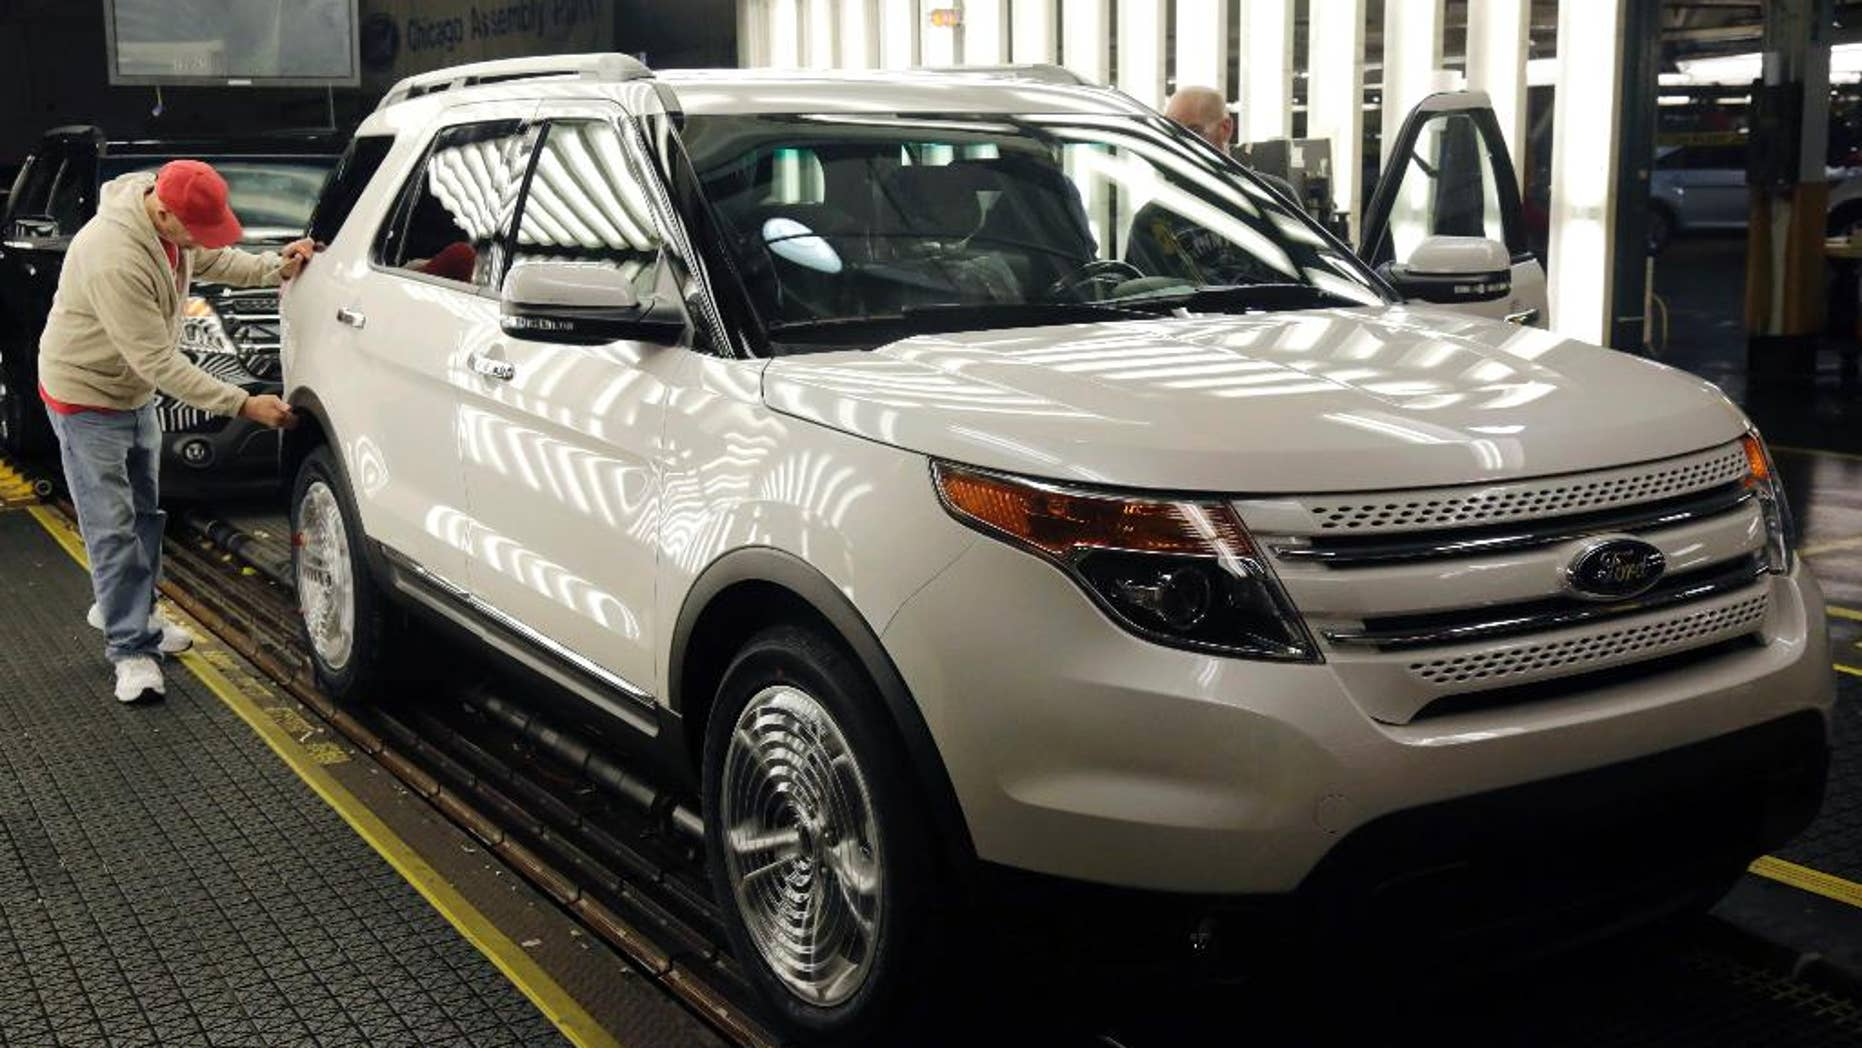 In this Oct. 22, 2014 photo, workers perform final inspections on 2015 Ford Explorers on the assembly line at the Chicago Ford Assembly Plant in Chicago. The Commerce Department releases its January report on durable goods on Thursday, Feb. 26, 2015. (AP Photo/M. Spencer Green)